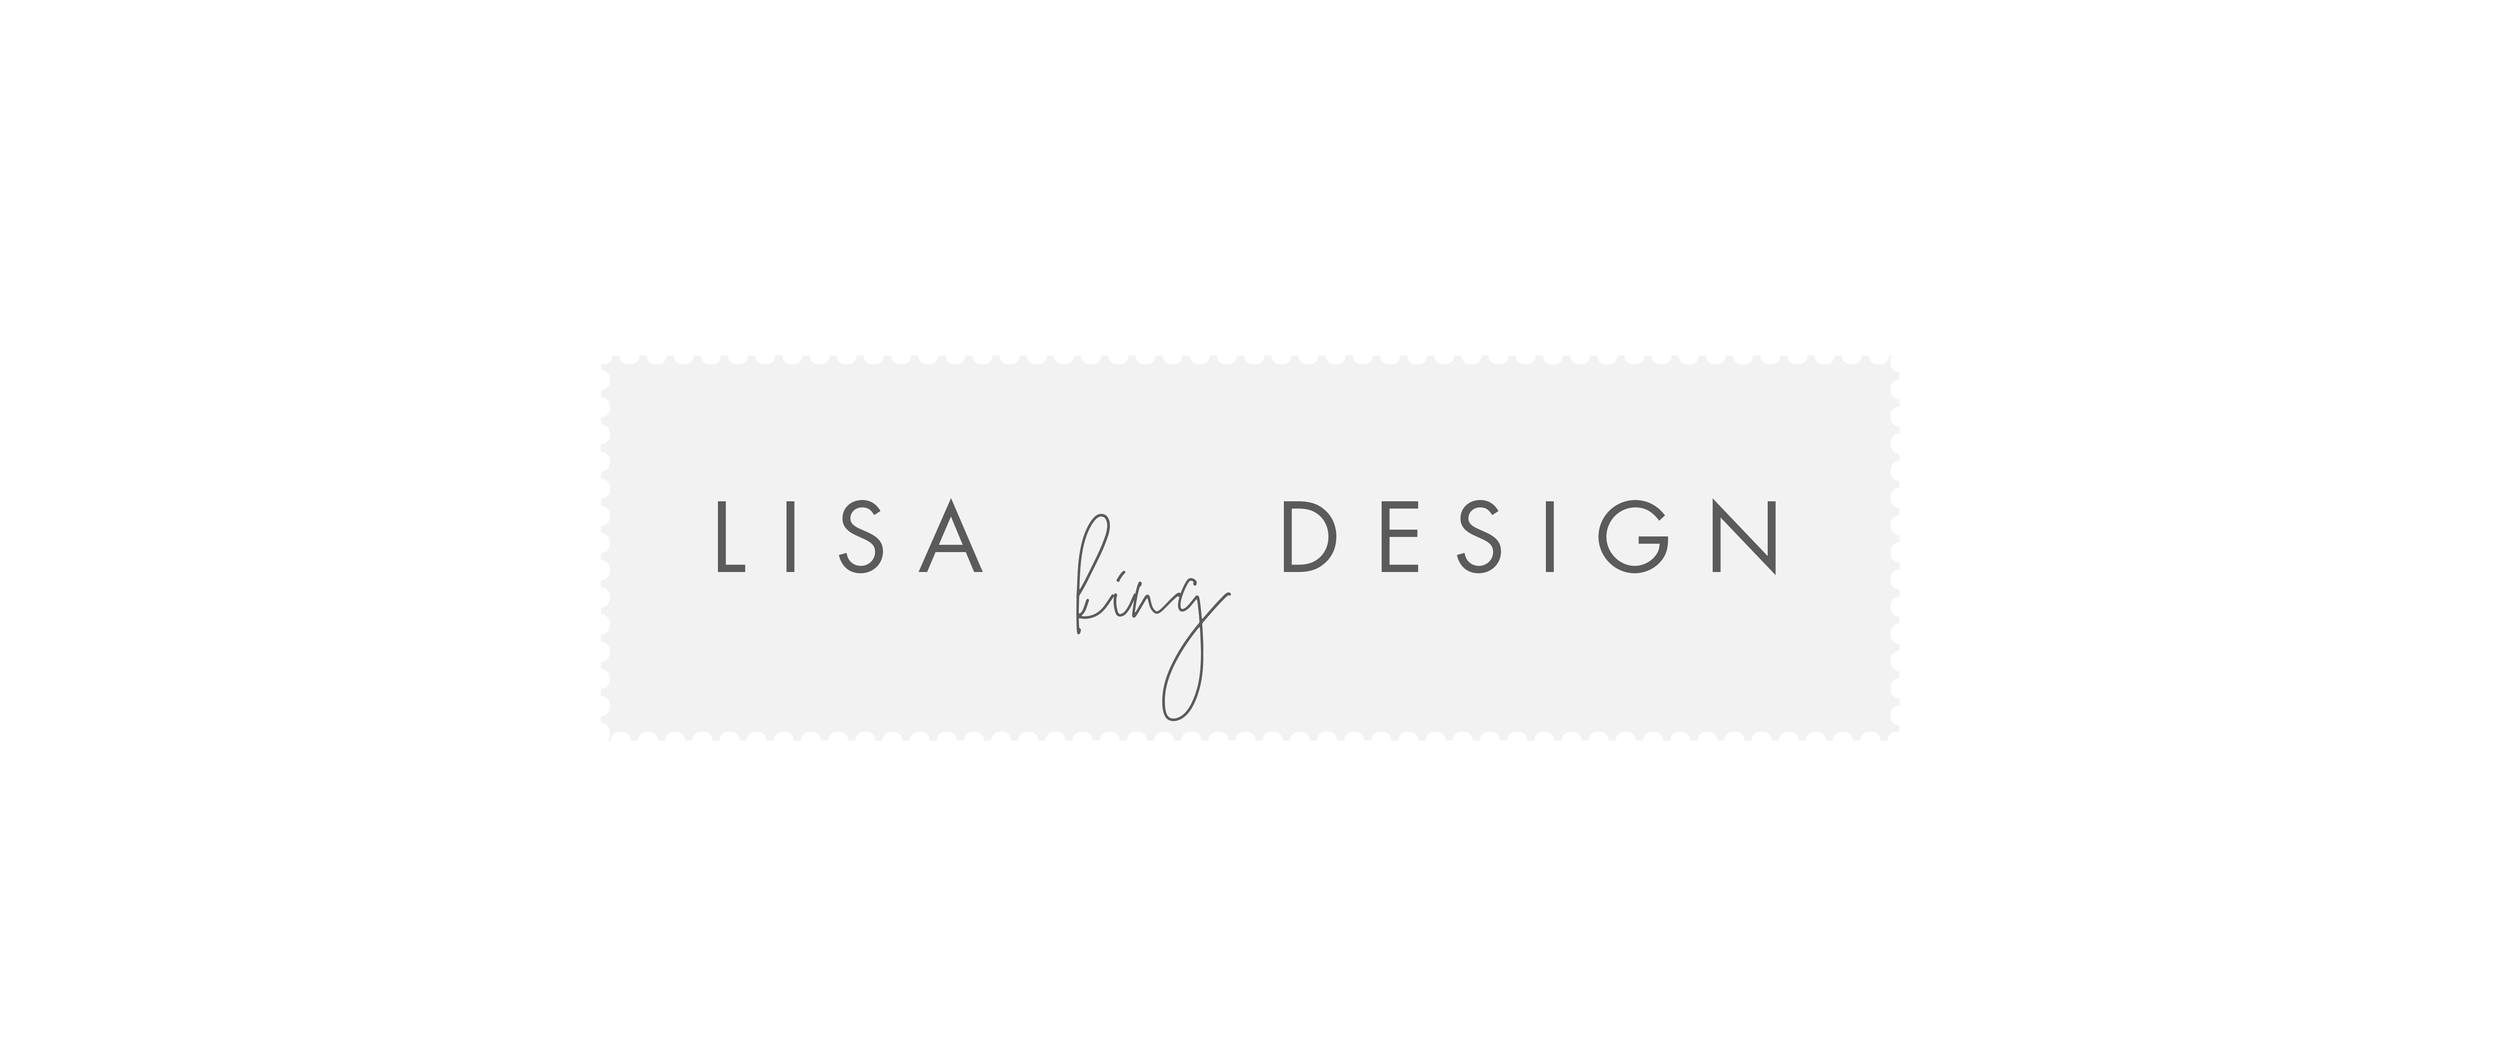 lisa king design.png